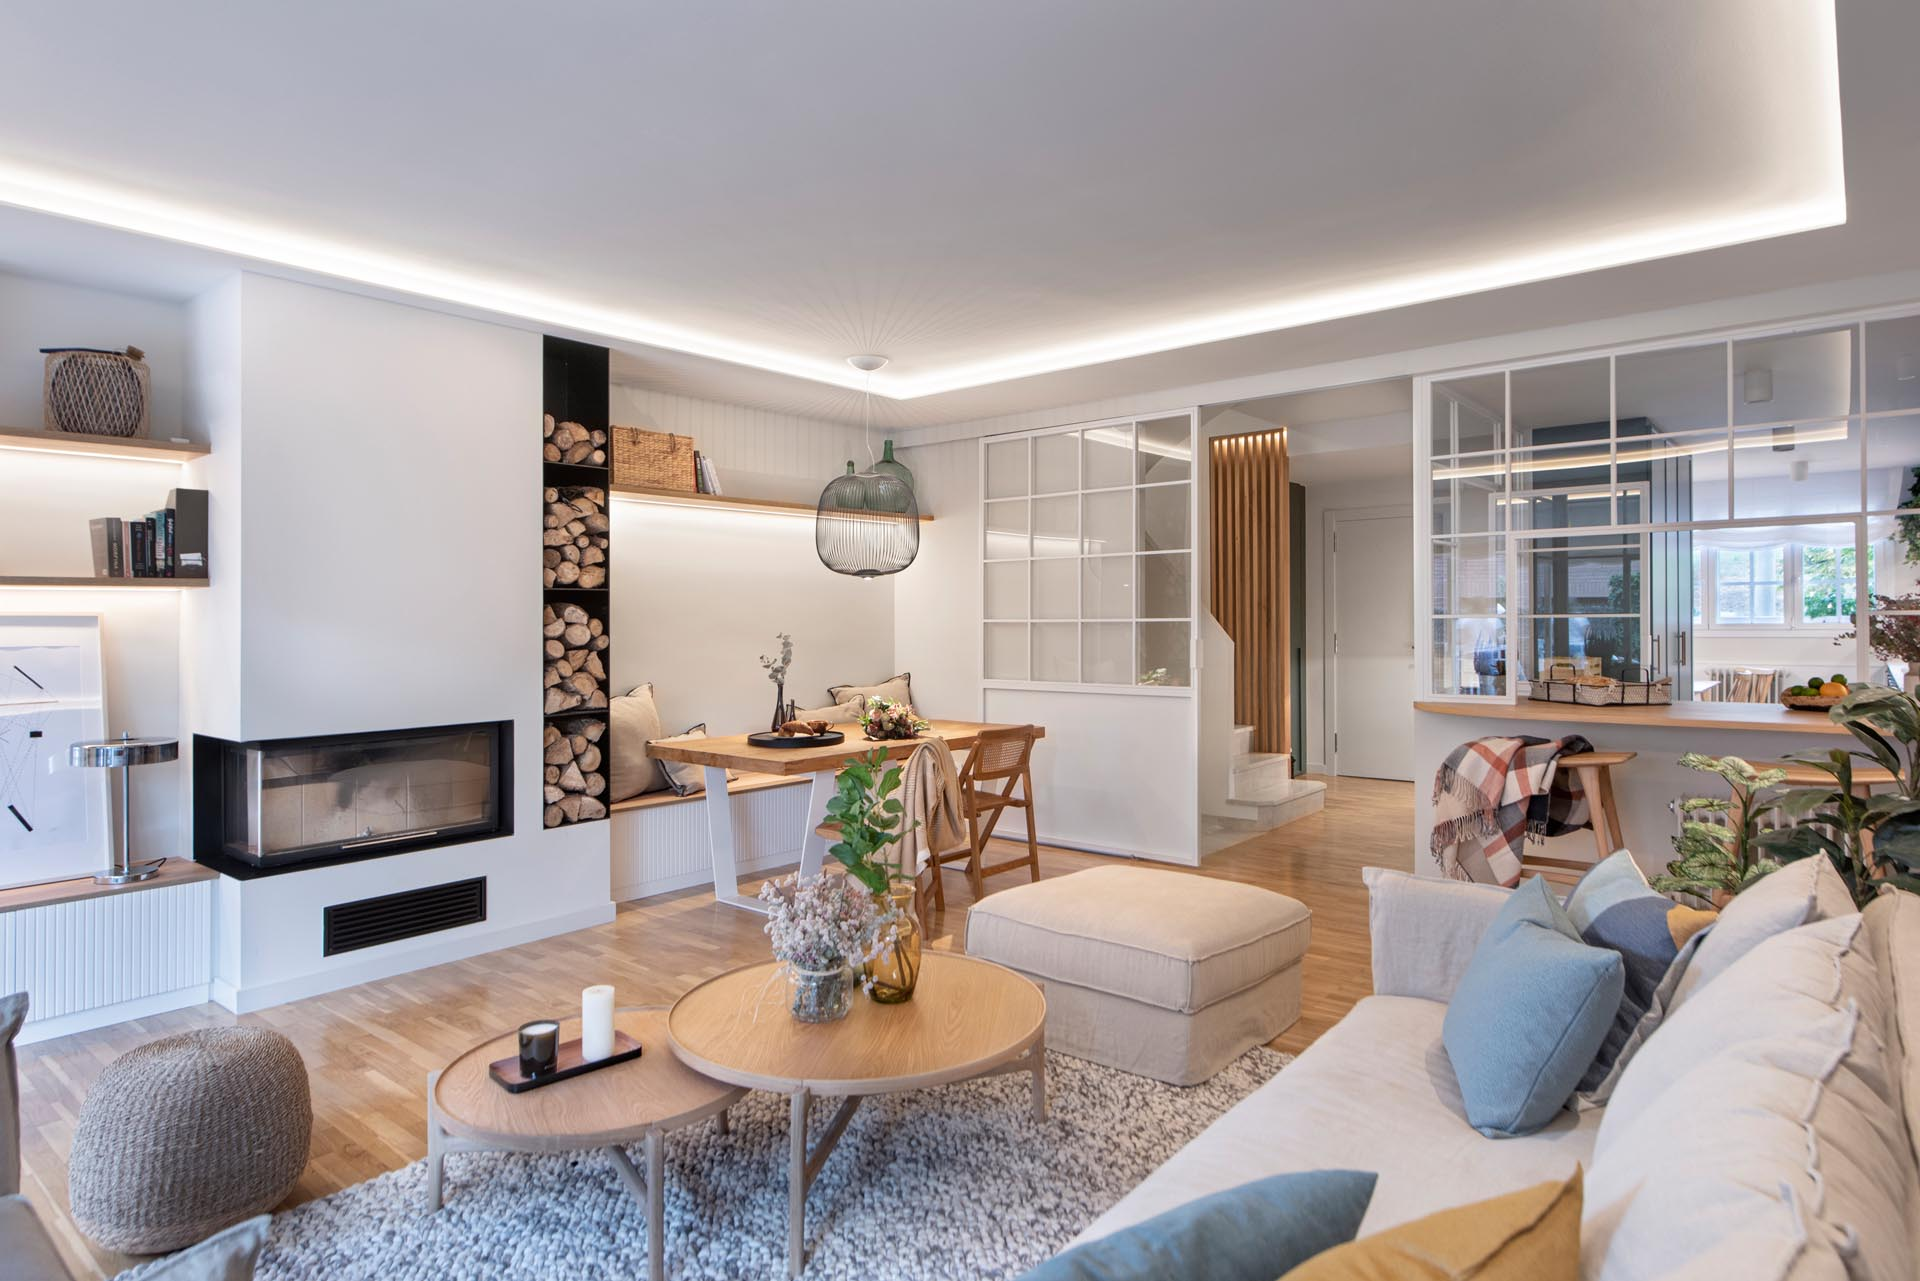 This modern open plan living room has shelving that lines the wall, while the couch and armchair are focused on the fireplace and built-in firewood storage.